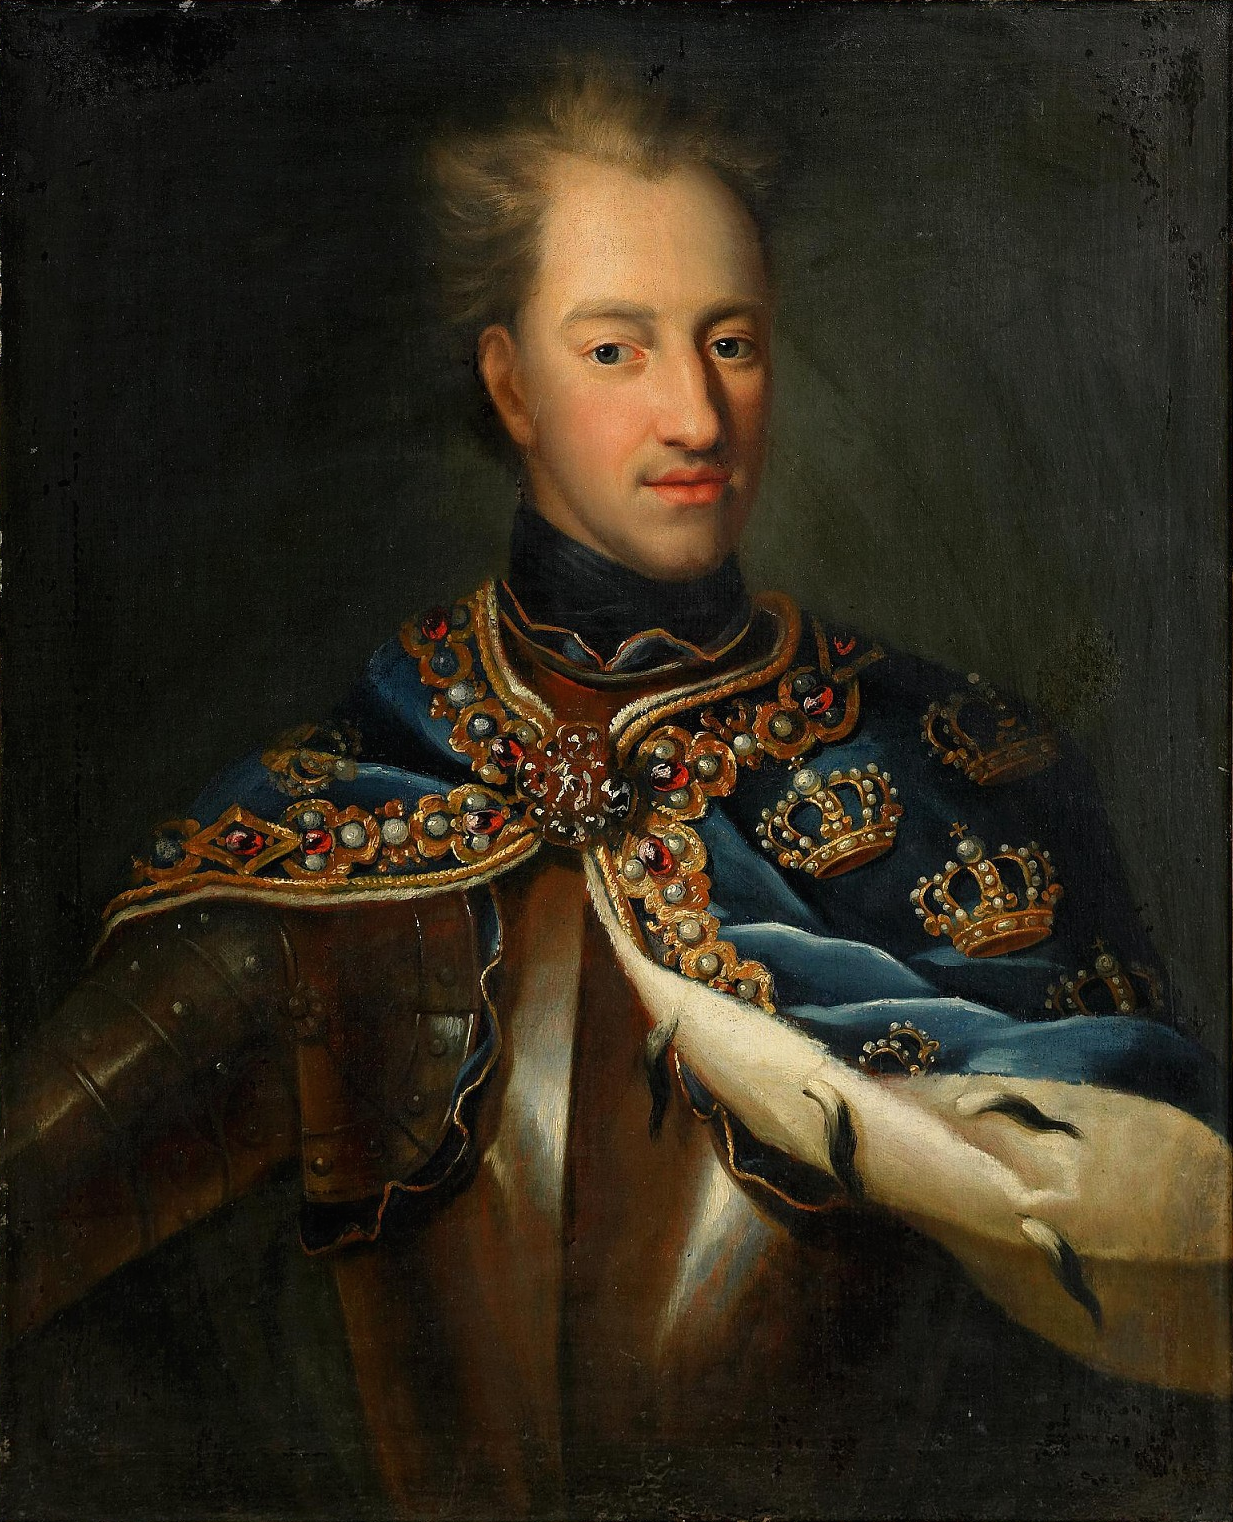 Charles XII of Sweden httpsuploadwikimediaorgwikipediacommons44